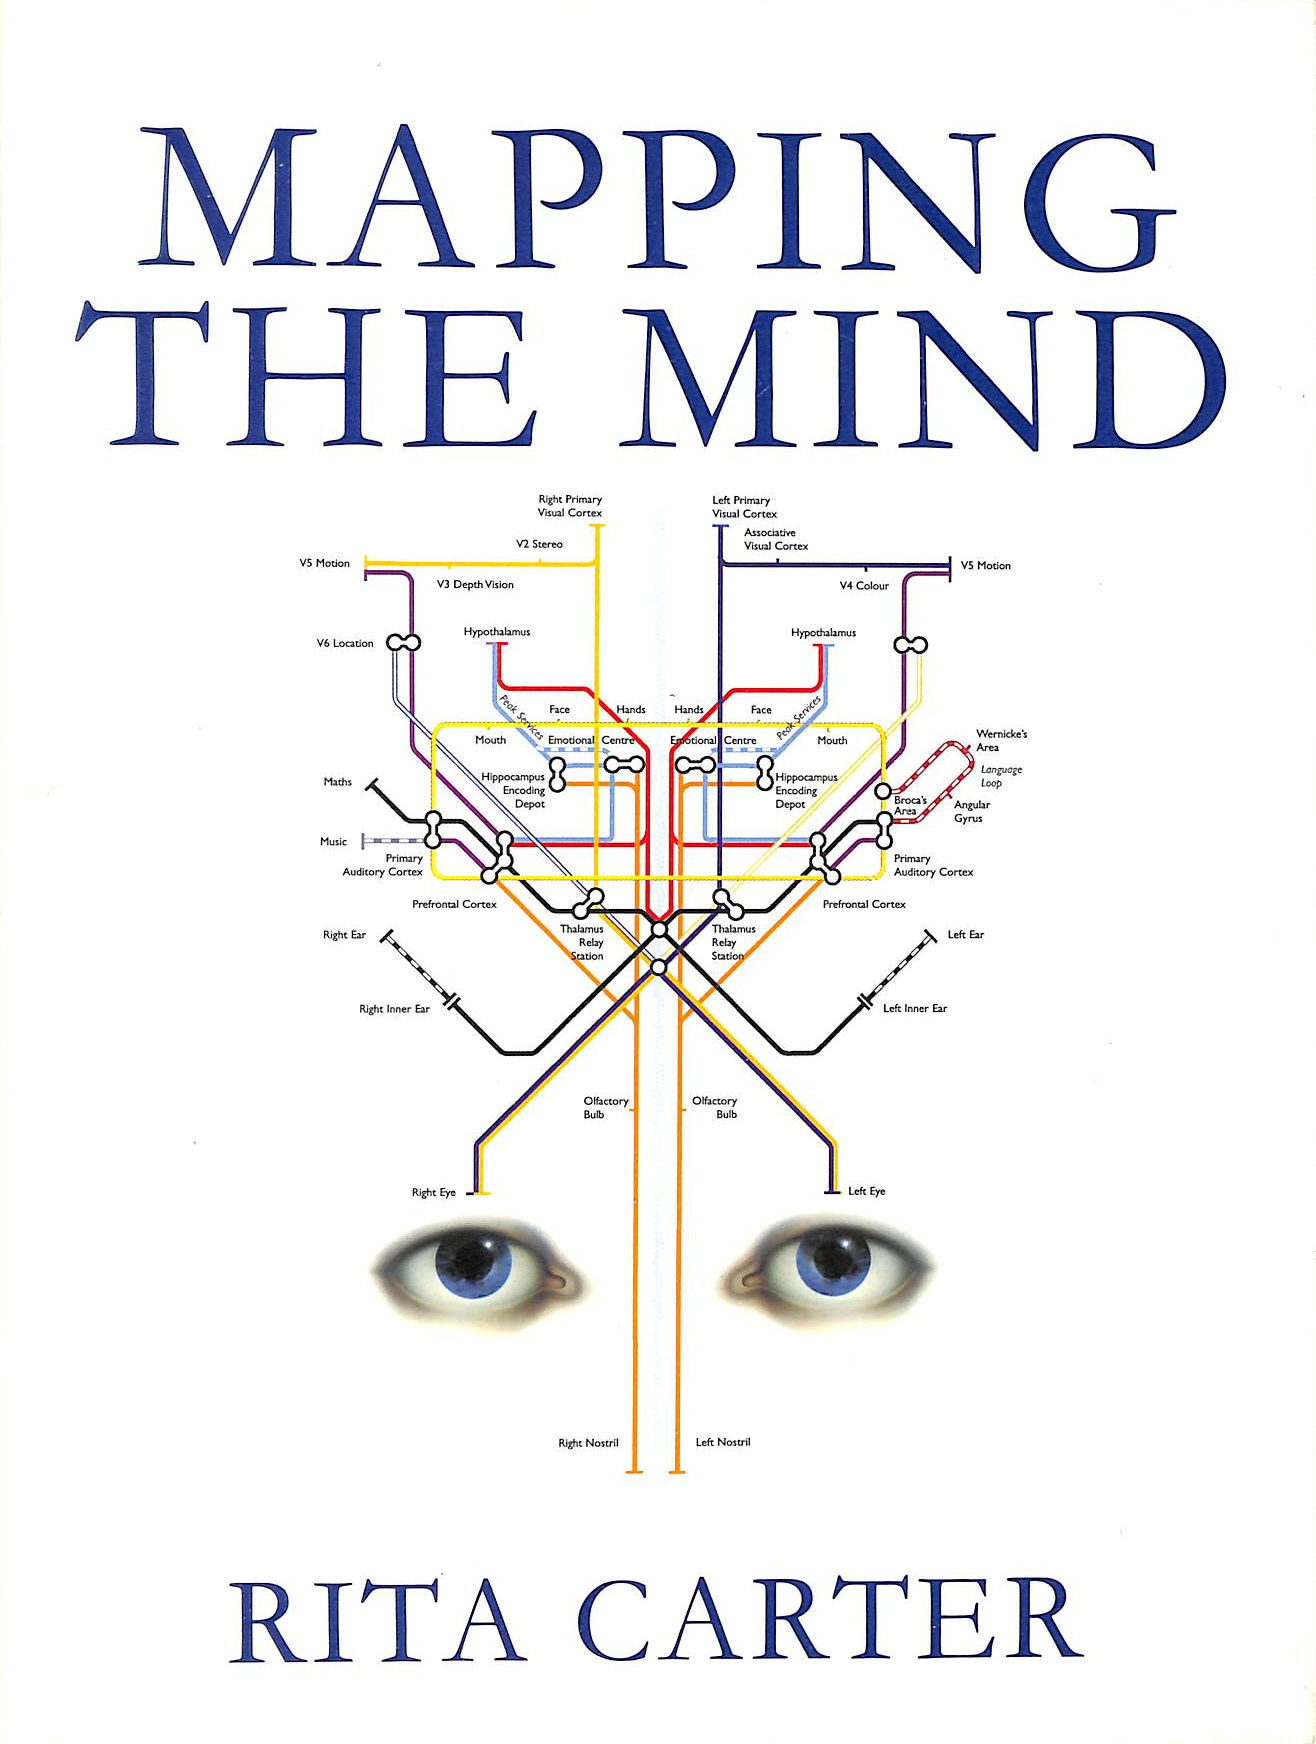 CARTER, RITA - Mapping The Mind